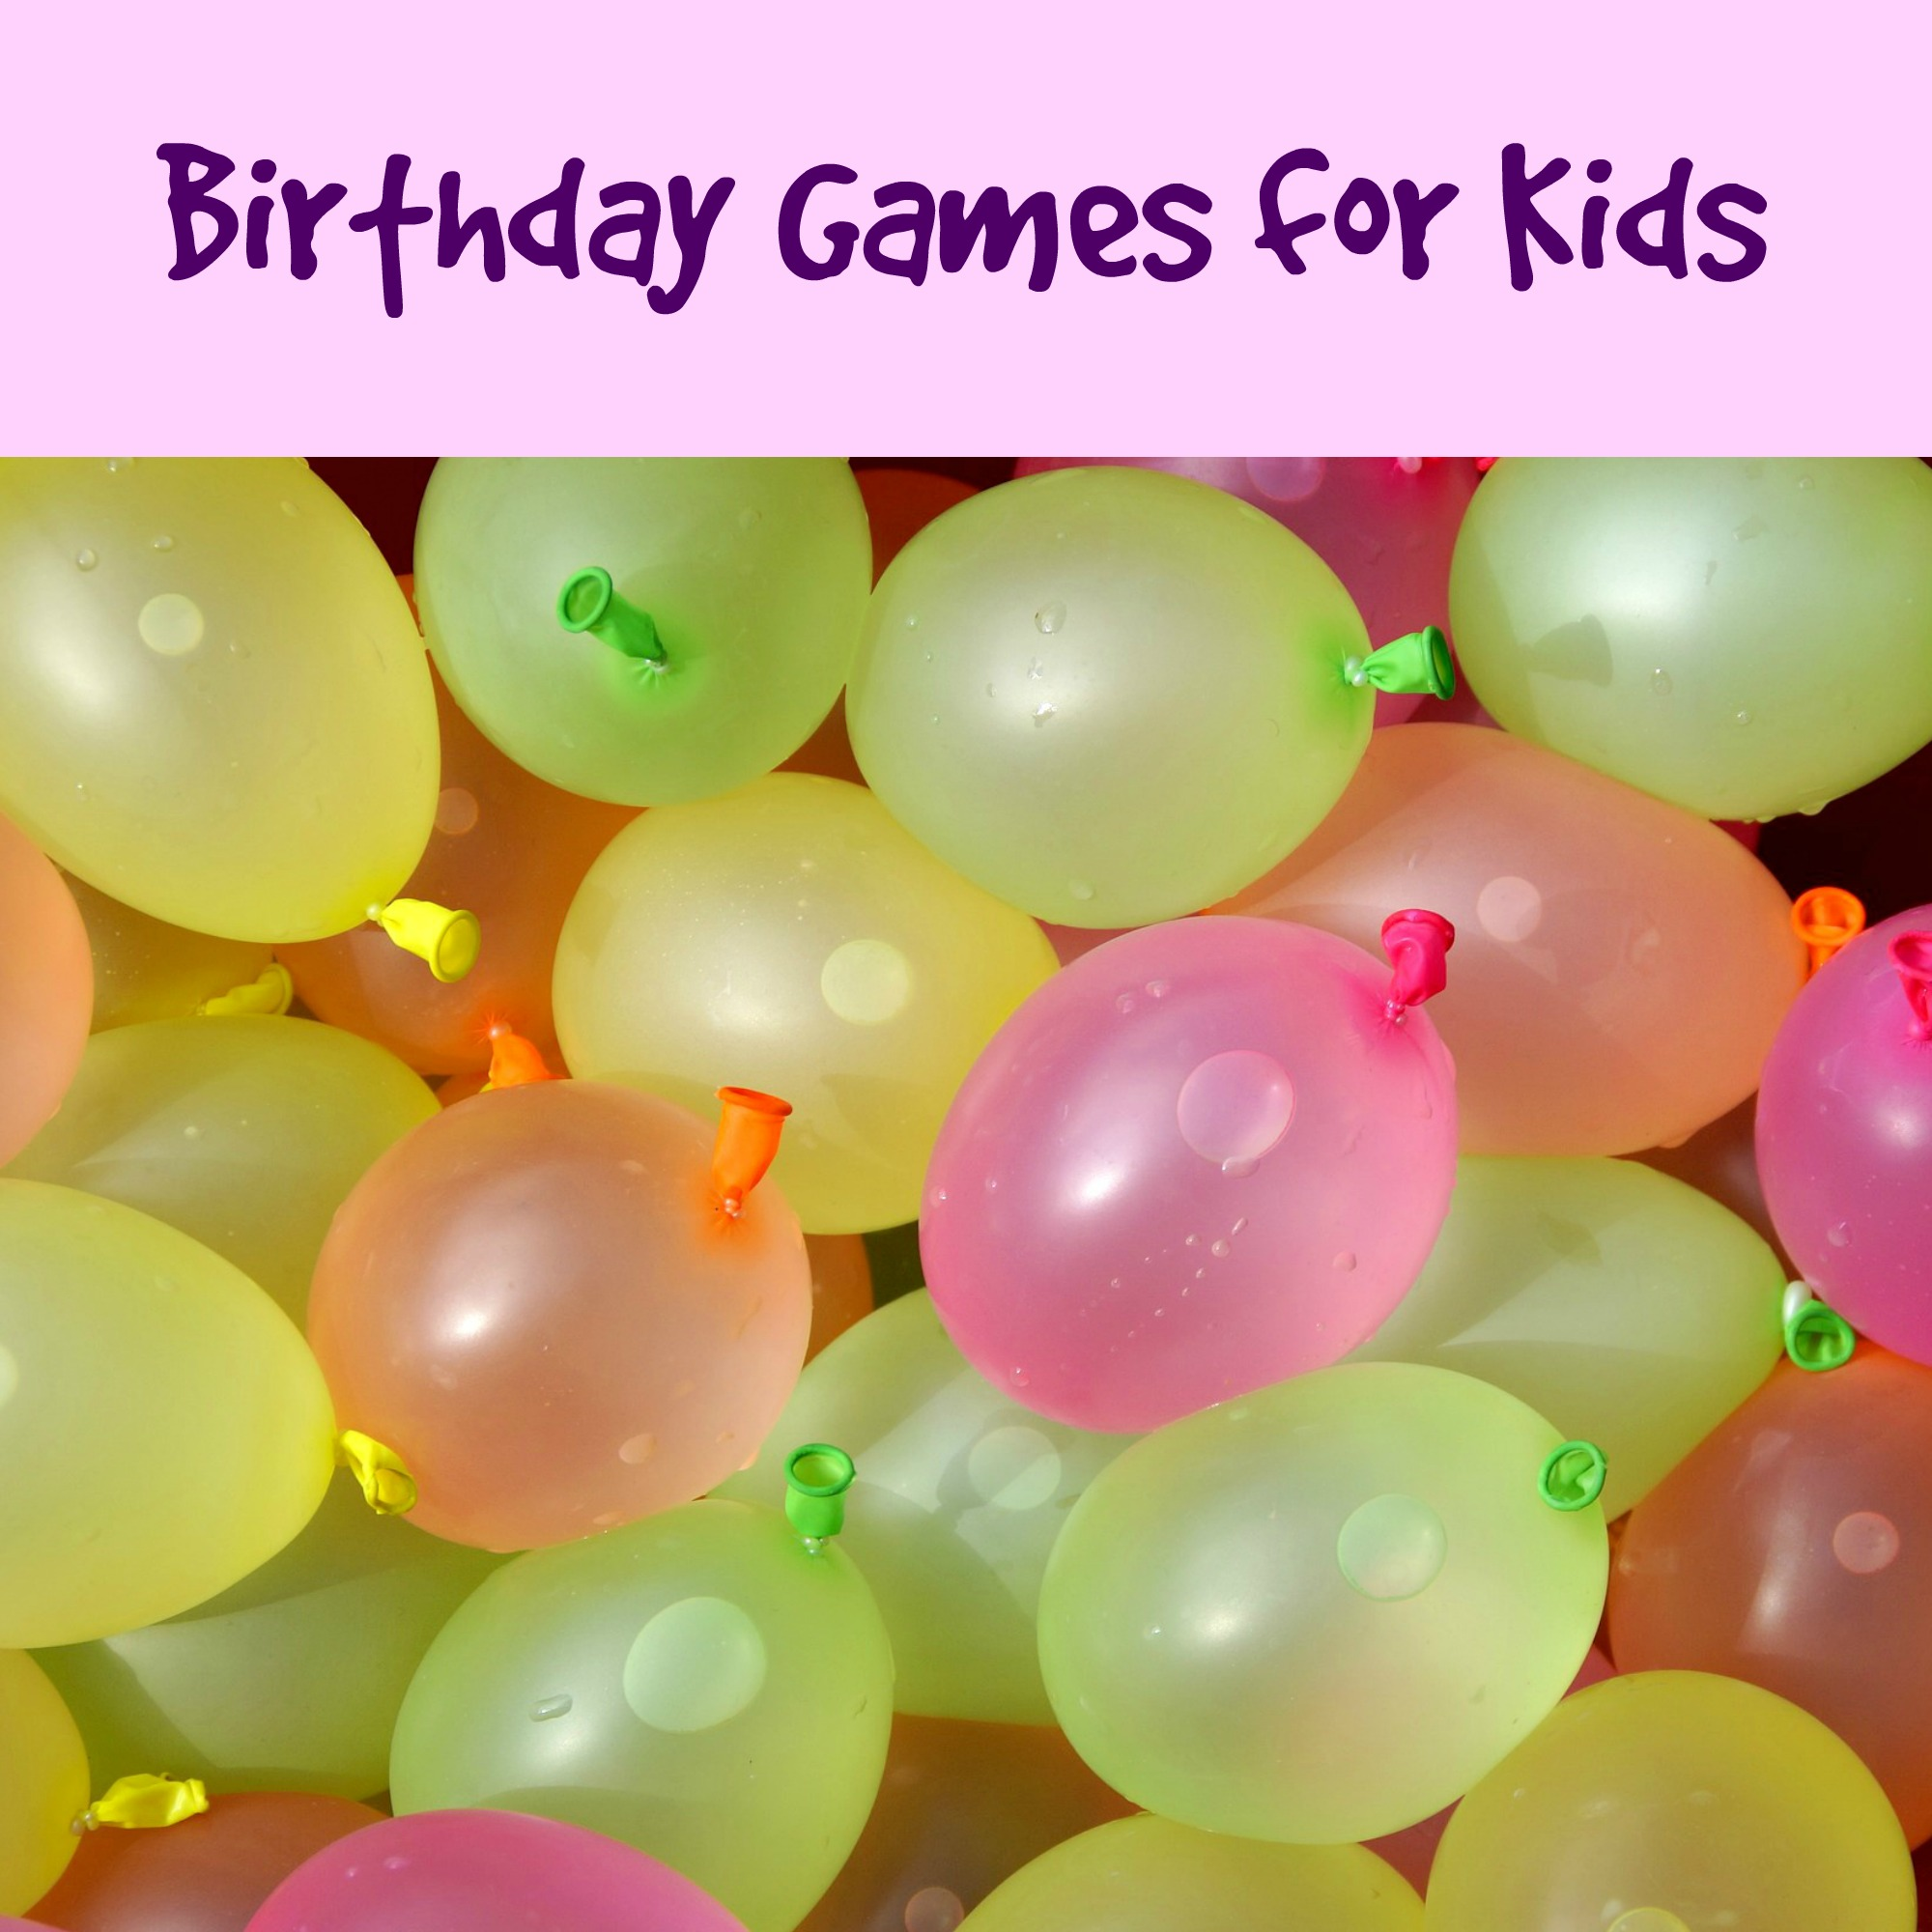 Awesome Entertaining Birthday Games for Kids